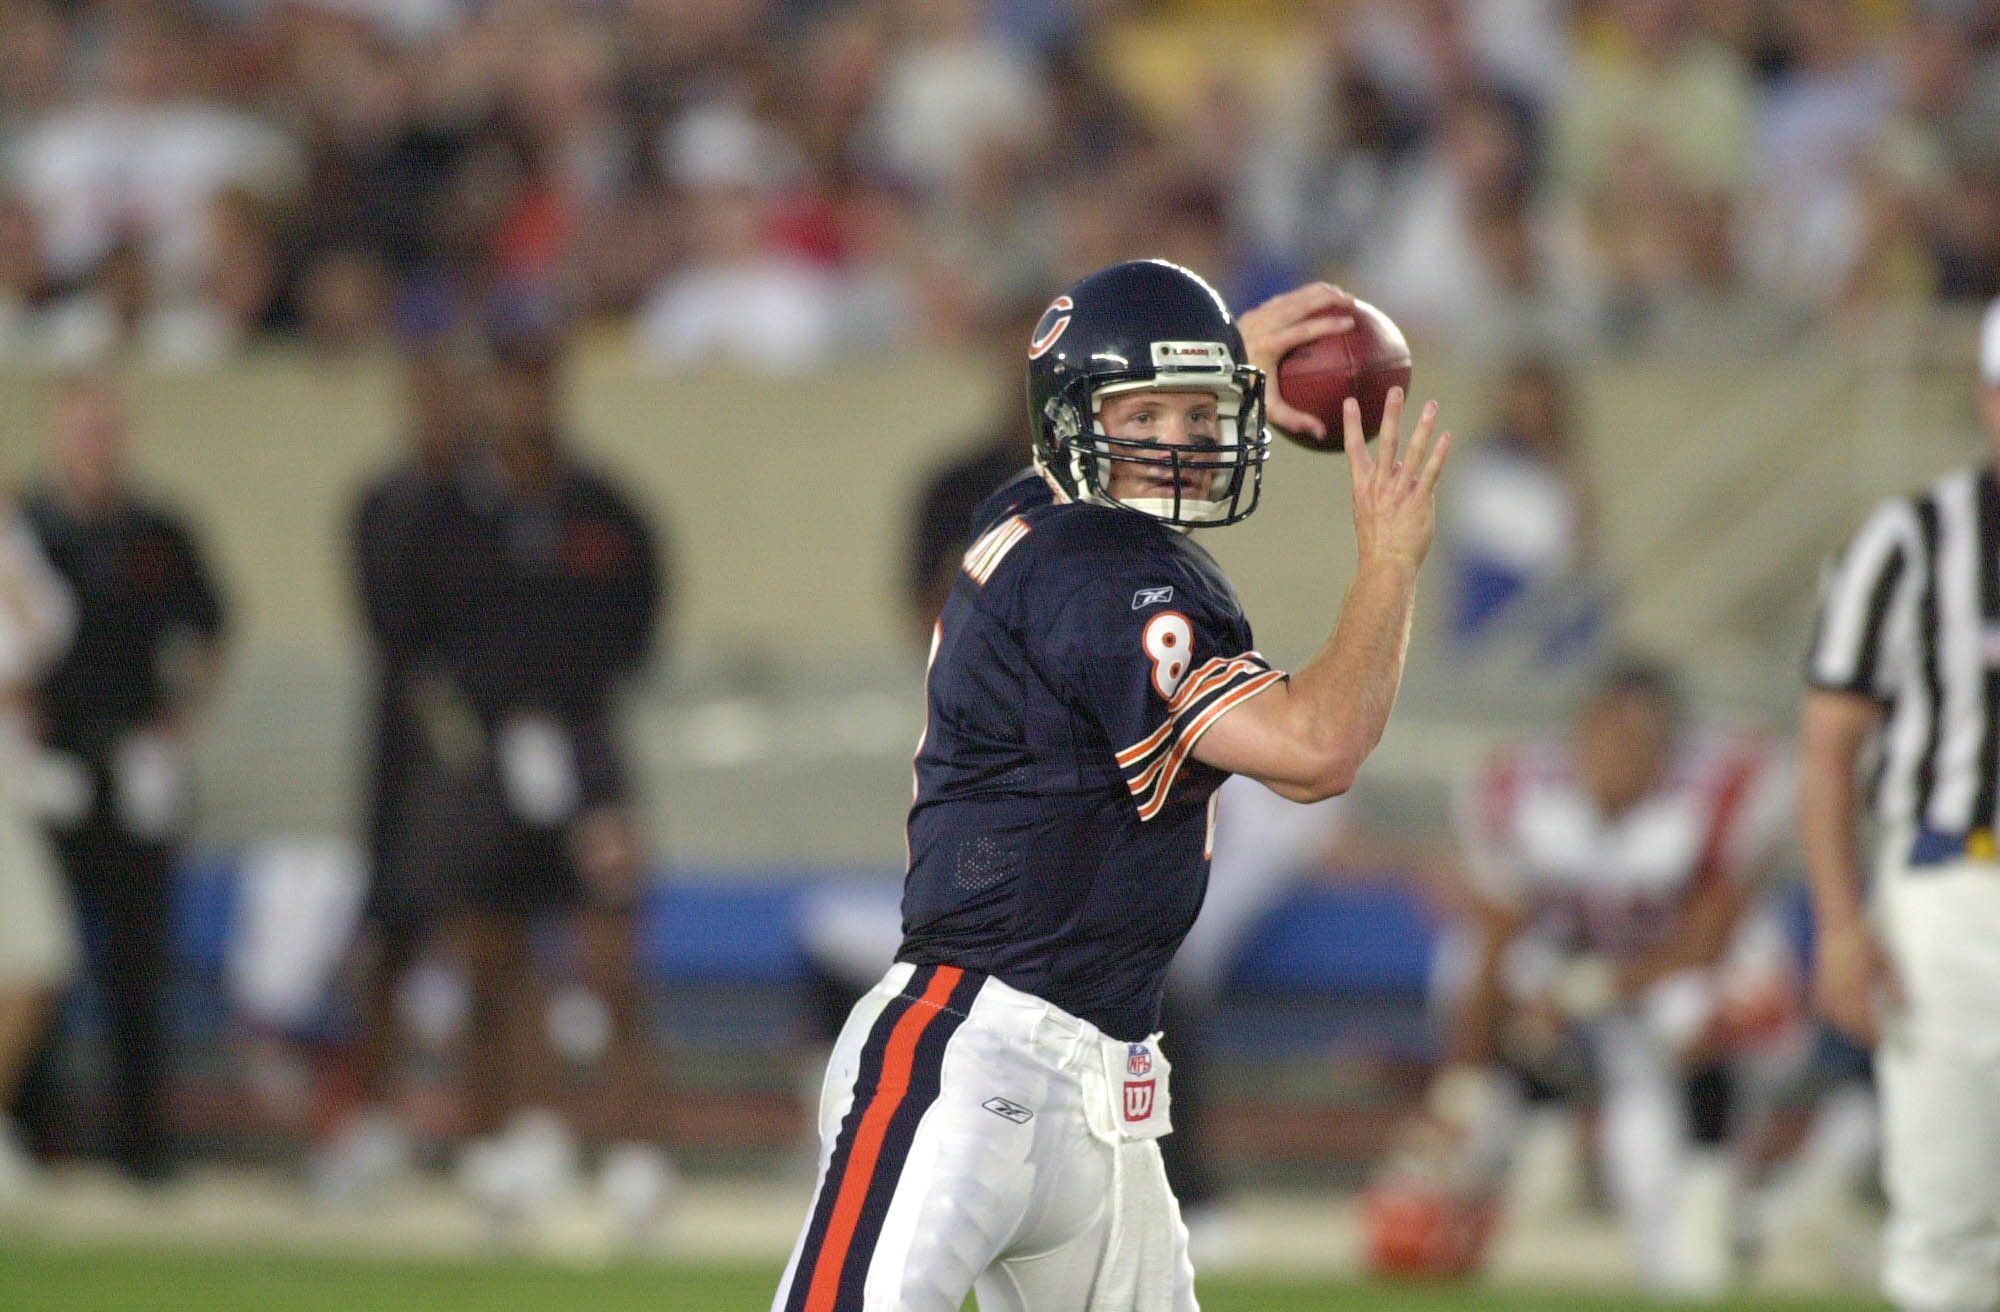 04 Aug 2001:  Cade McNown #8 of the Chicago Bears looks for the open man during the NFL pre-season game against the Cincinnati Bengals at Soldier Field in Chicago, IL. The Bears defeated the Bengals 16-13 in overtime. DIGITAL IMAGE Mandatory Credit: Jonat